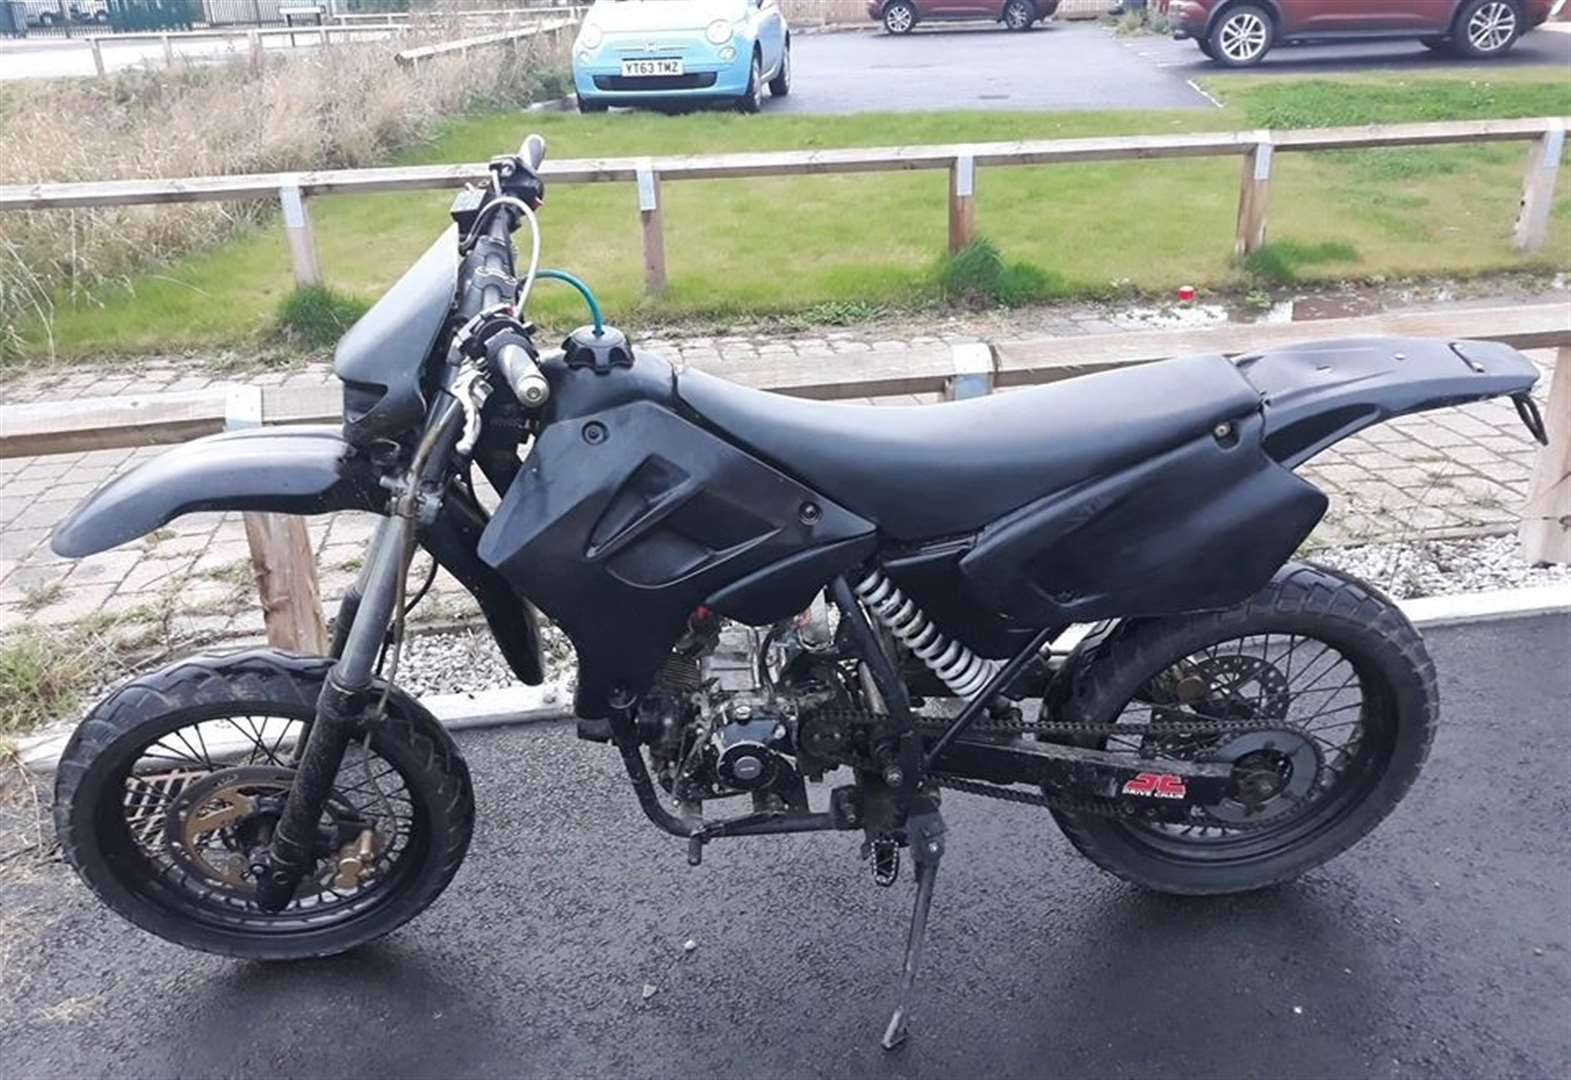 Uninsured and untaxed motorbike seized by police